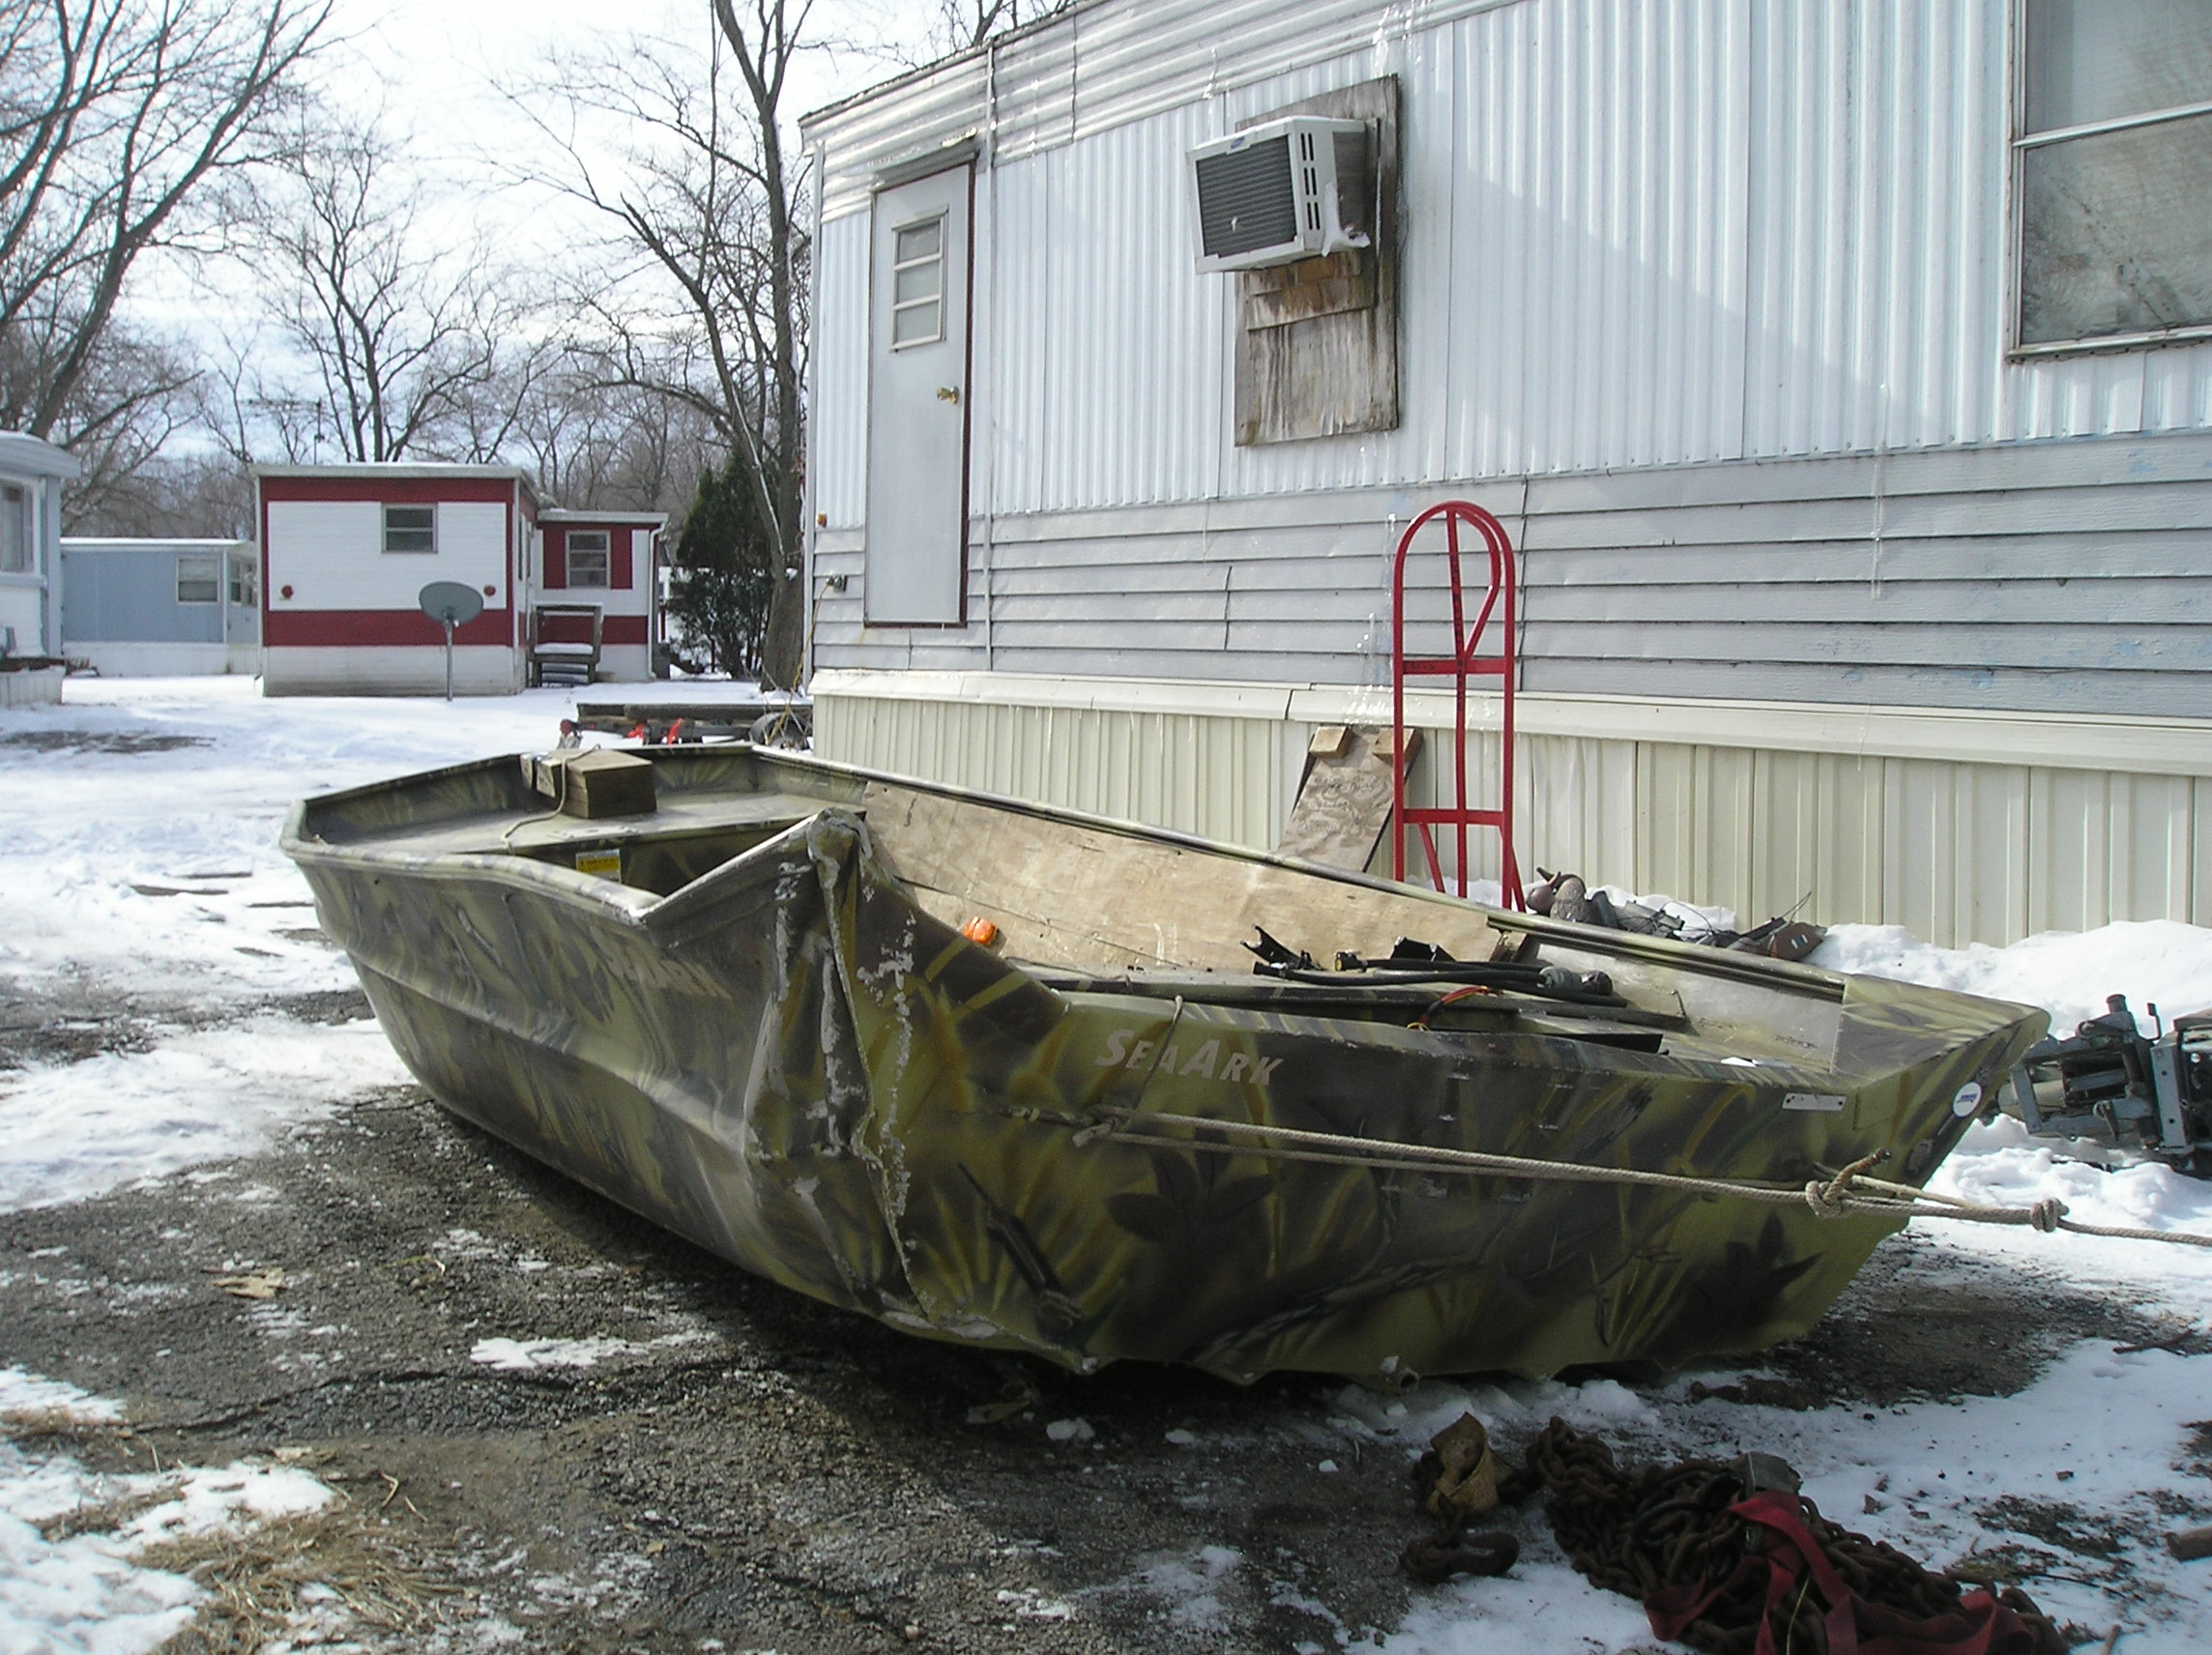 boat after accident on I-72 005.jpg